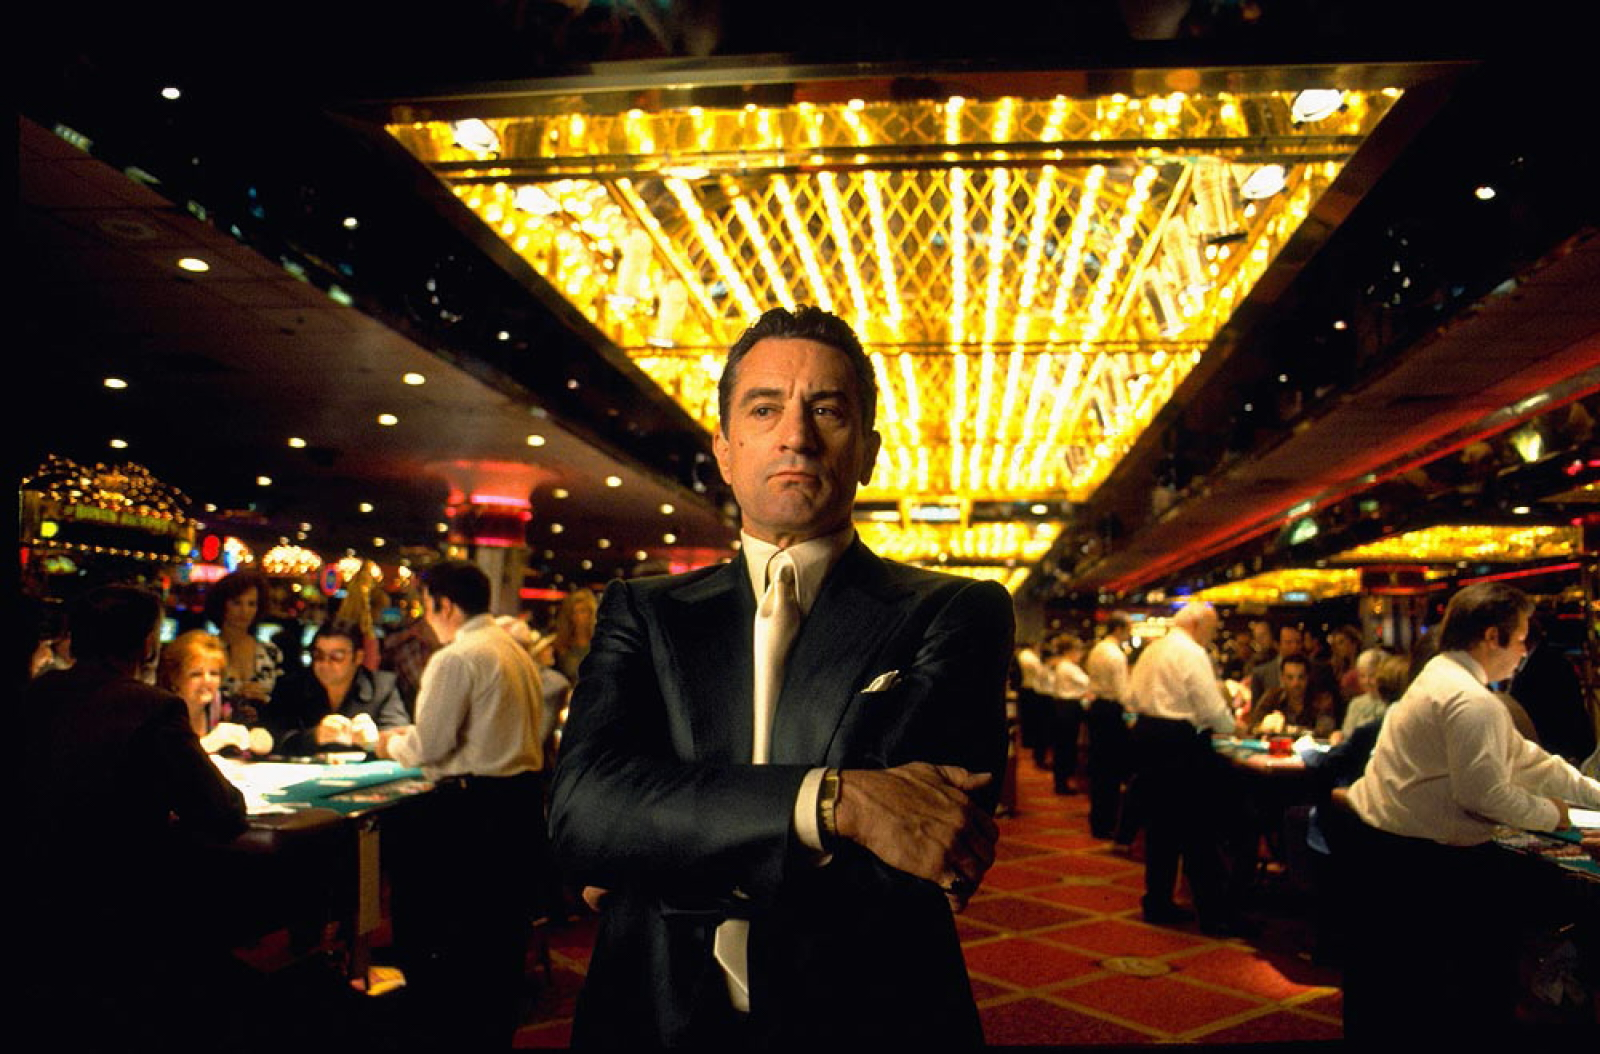 Casino Robert de Niro